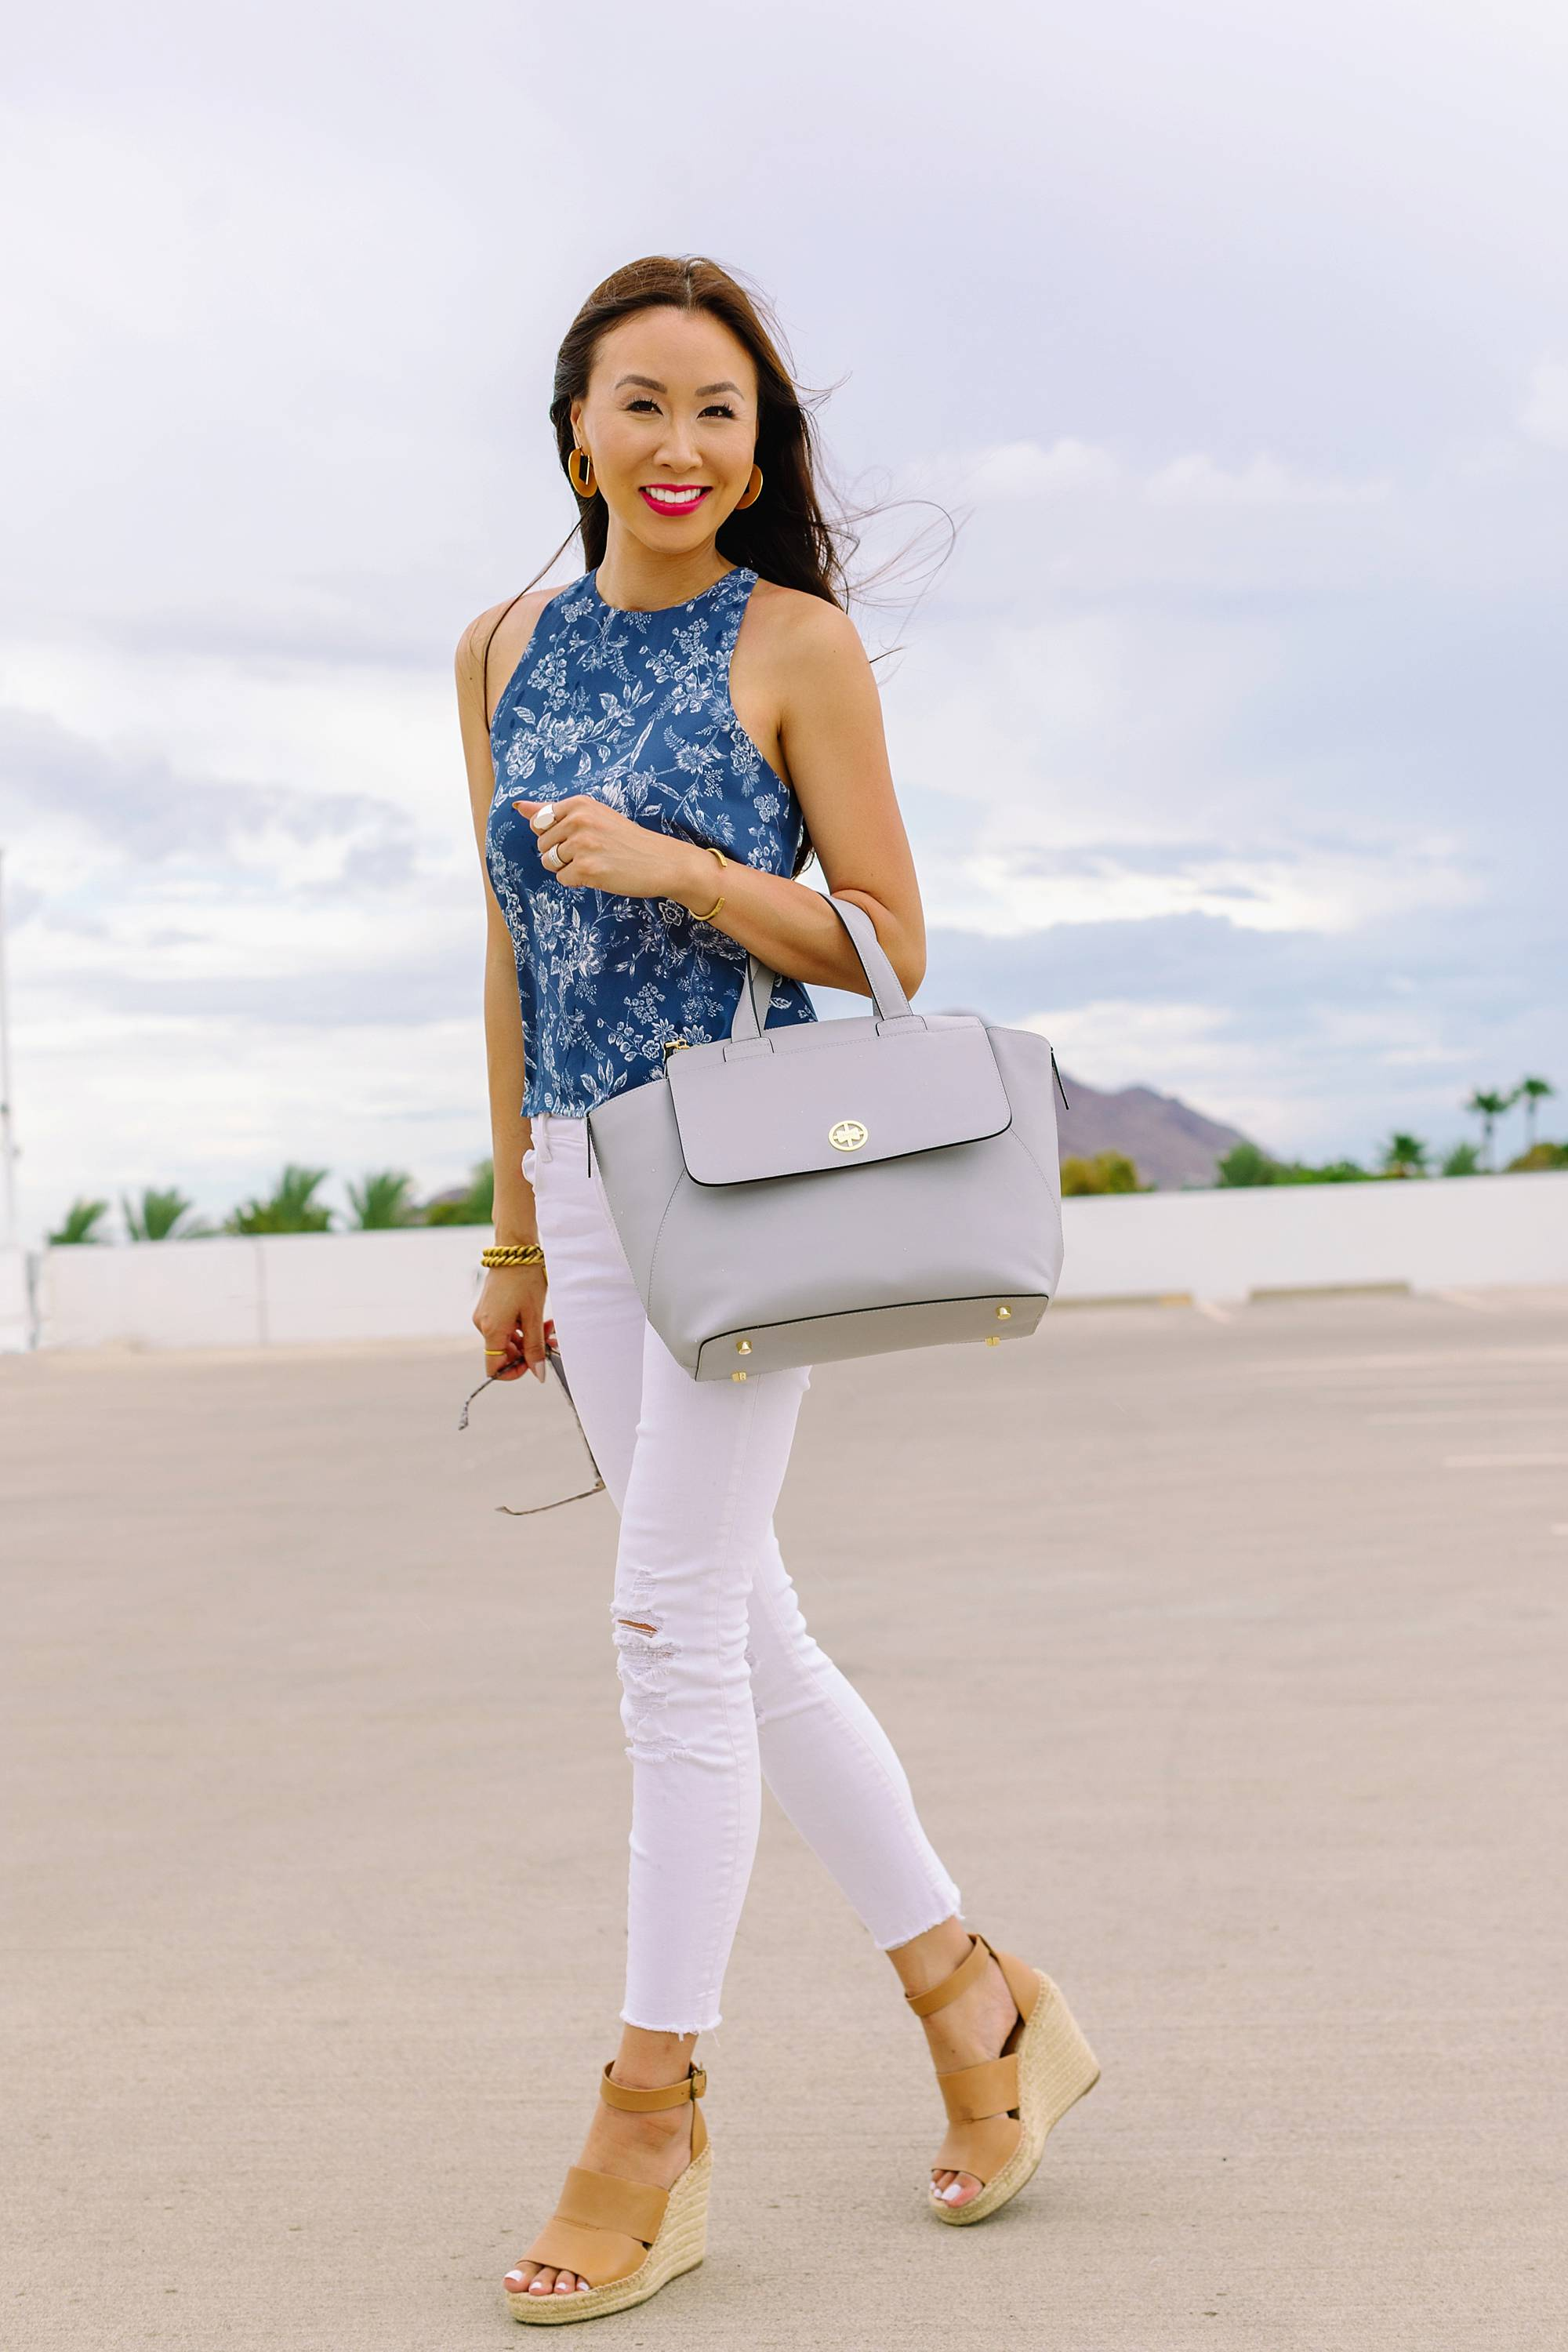 convertible backpack tote 4 in 1 tote backpack satchel and crossbody work and every day backpack by Jemma bag. Leather bag, worn by Phoenix lifestyle blogger Diana elizabeth